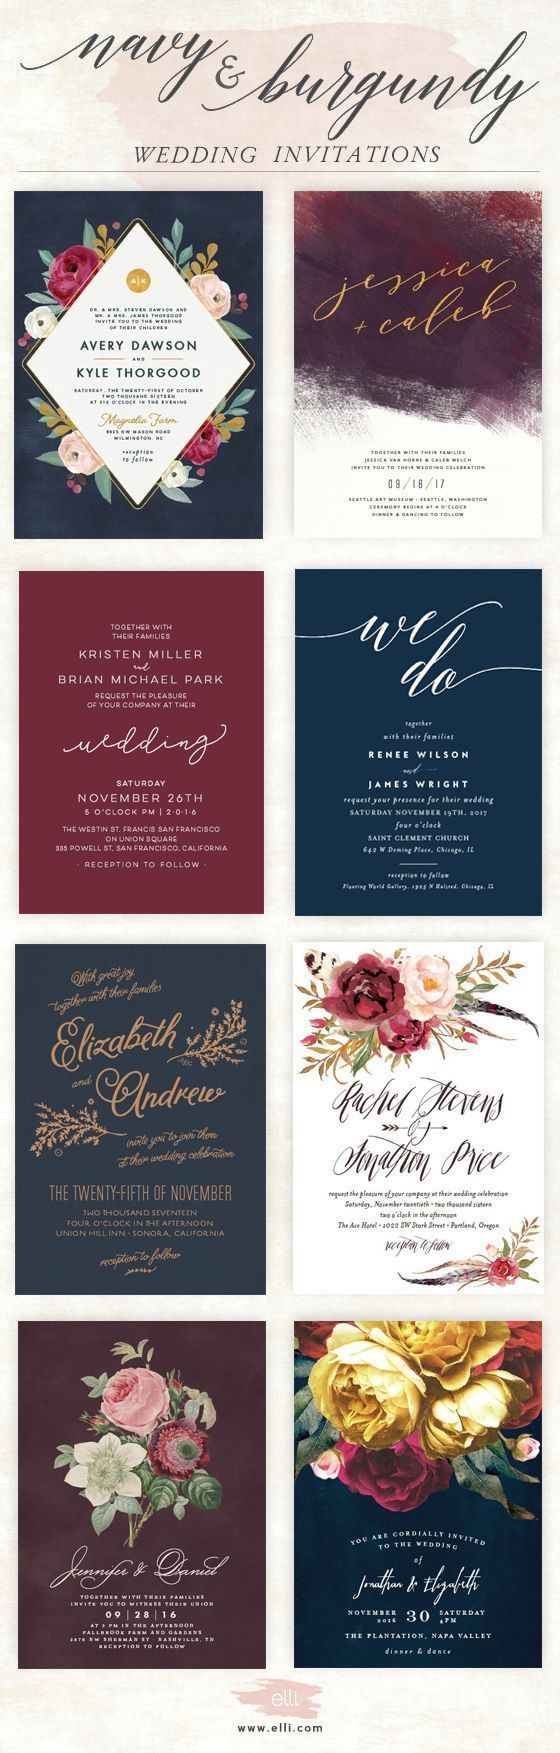 307 Best Wedding Invitation Images On Pinterest